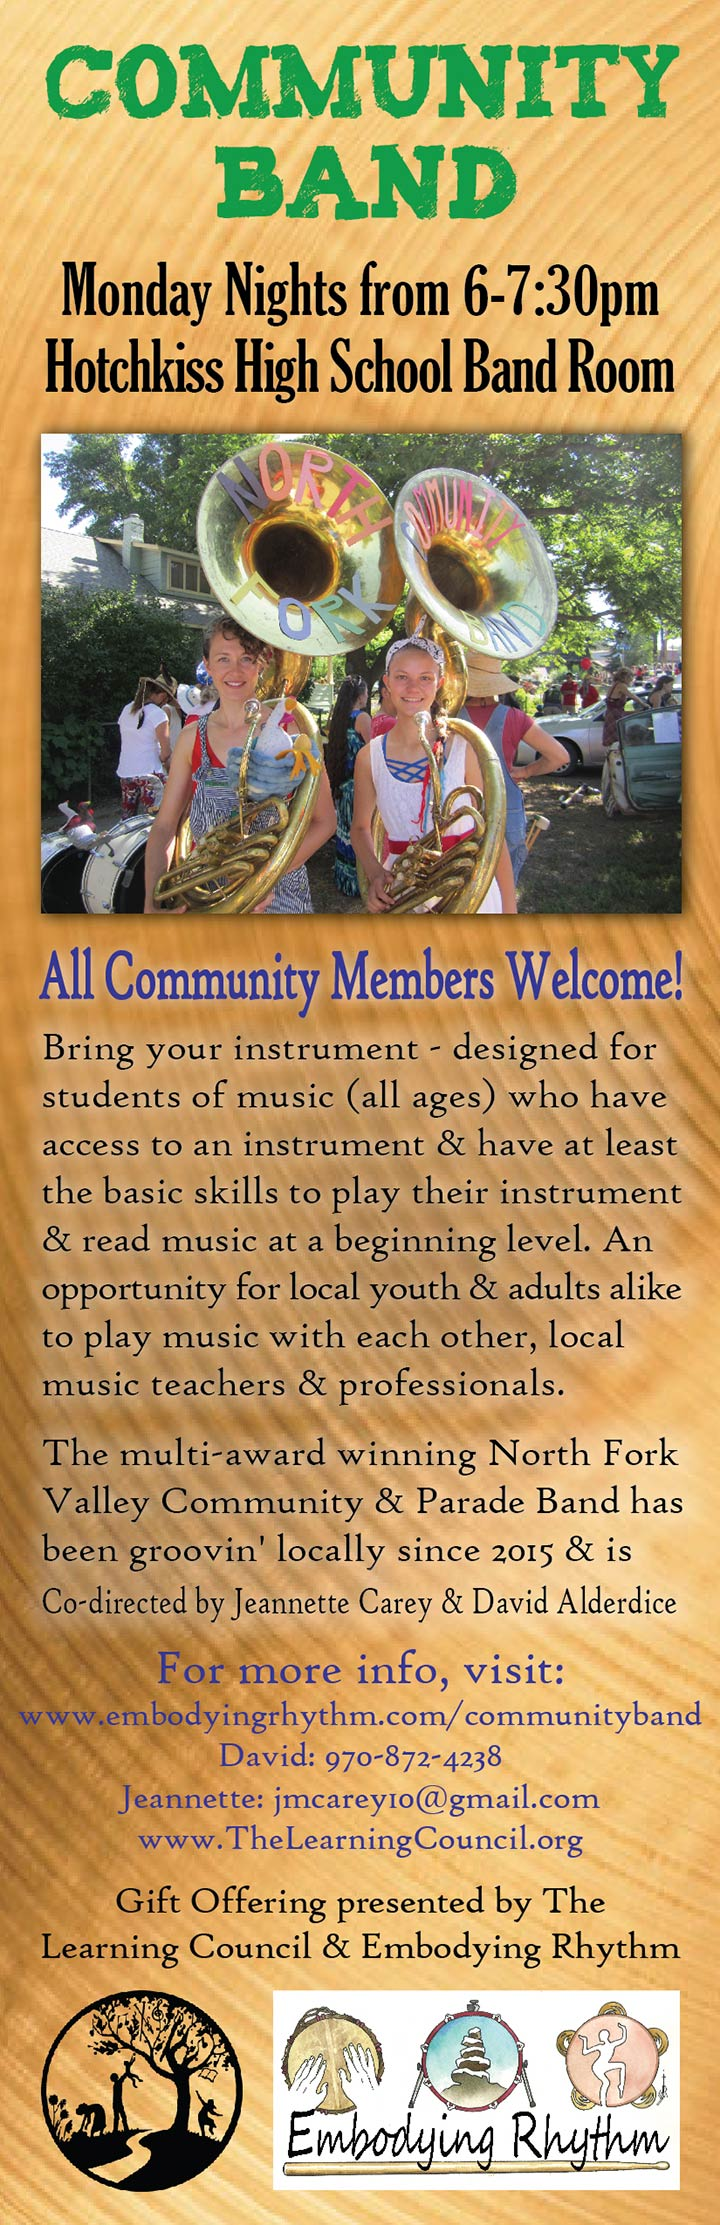 Community Band image